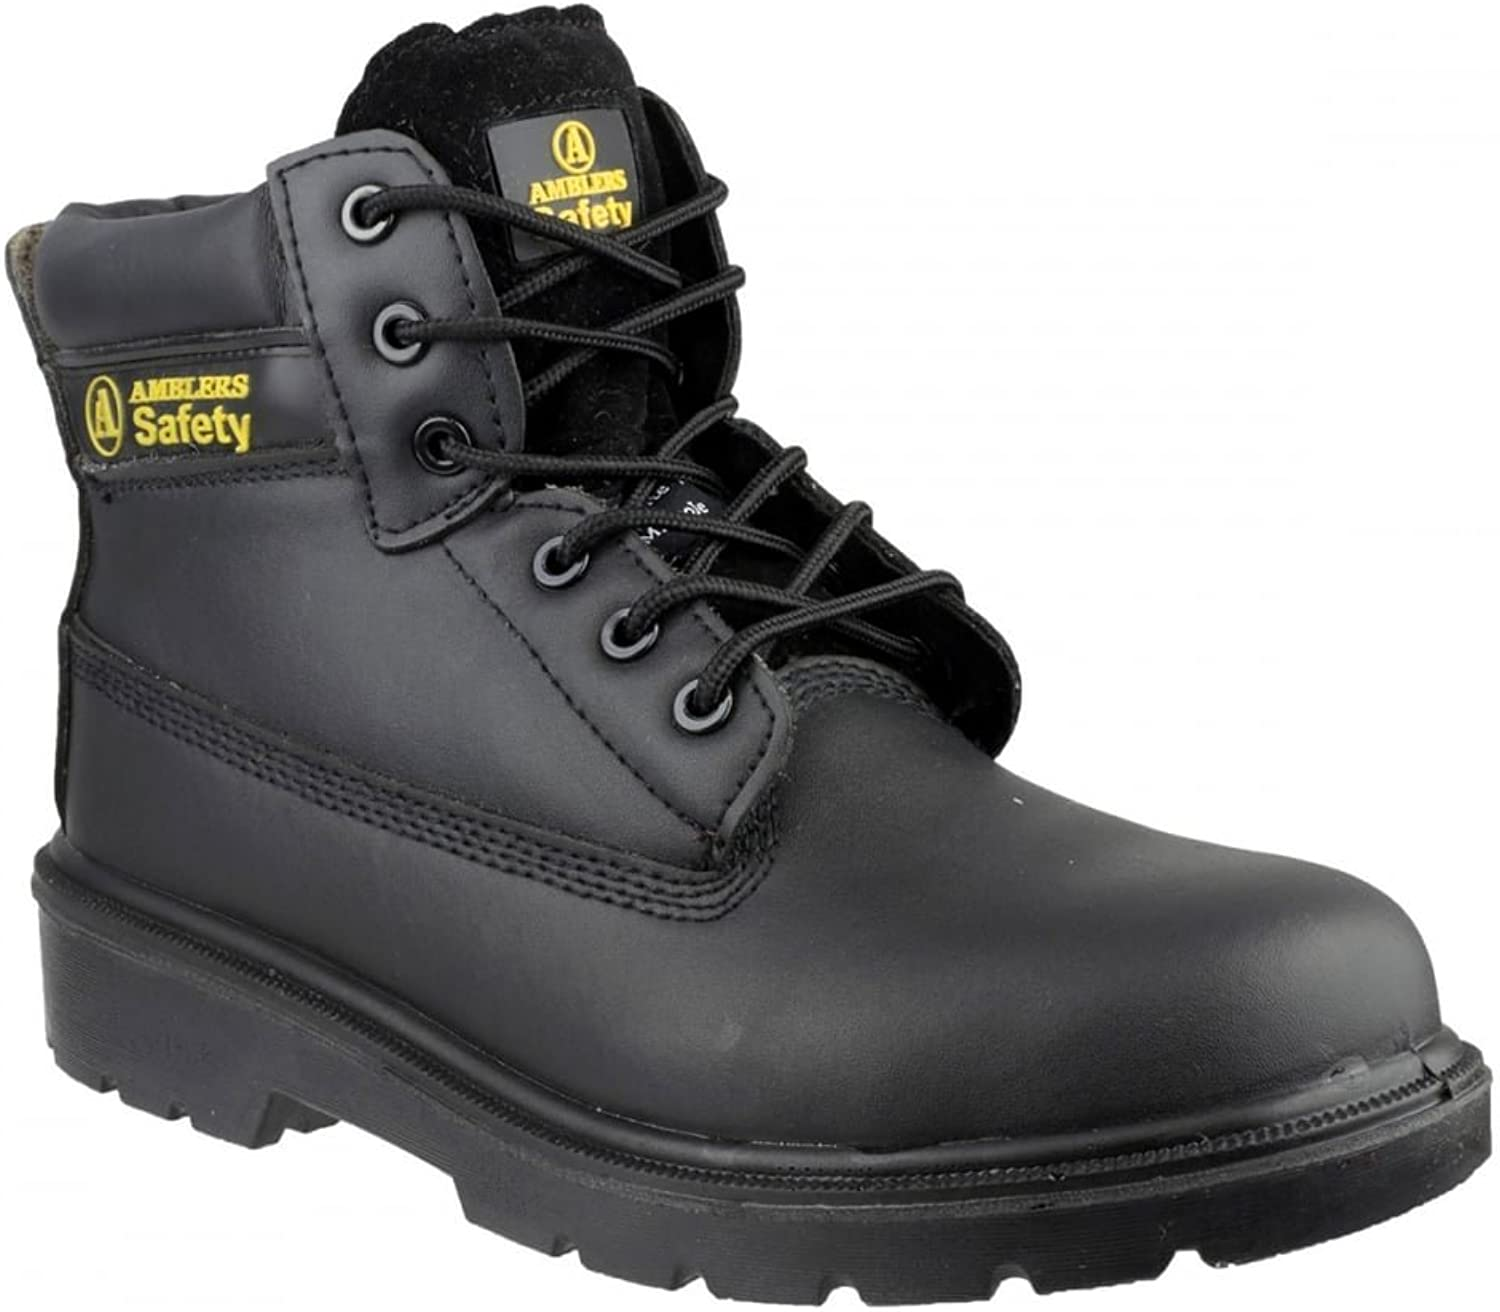 Amblers Safety Safety FS12C Comp Lace up Boots